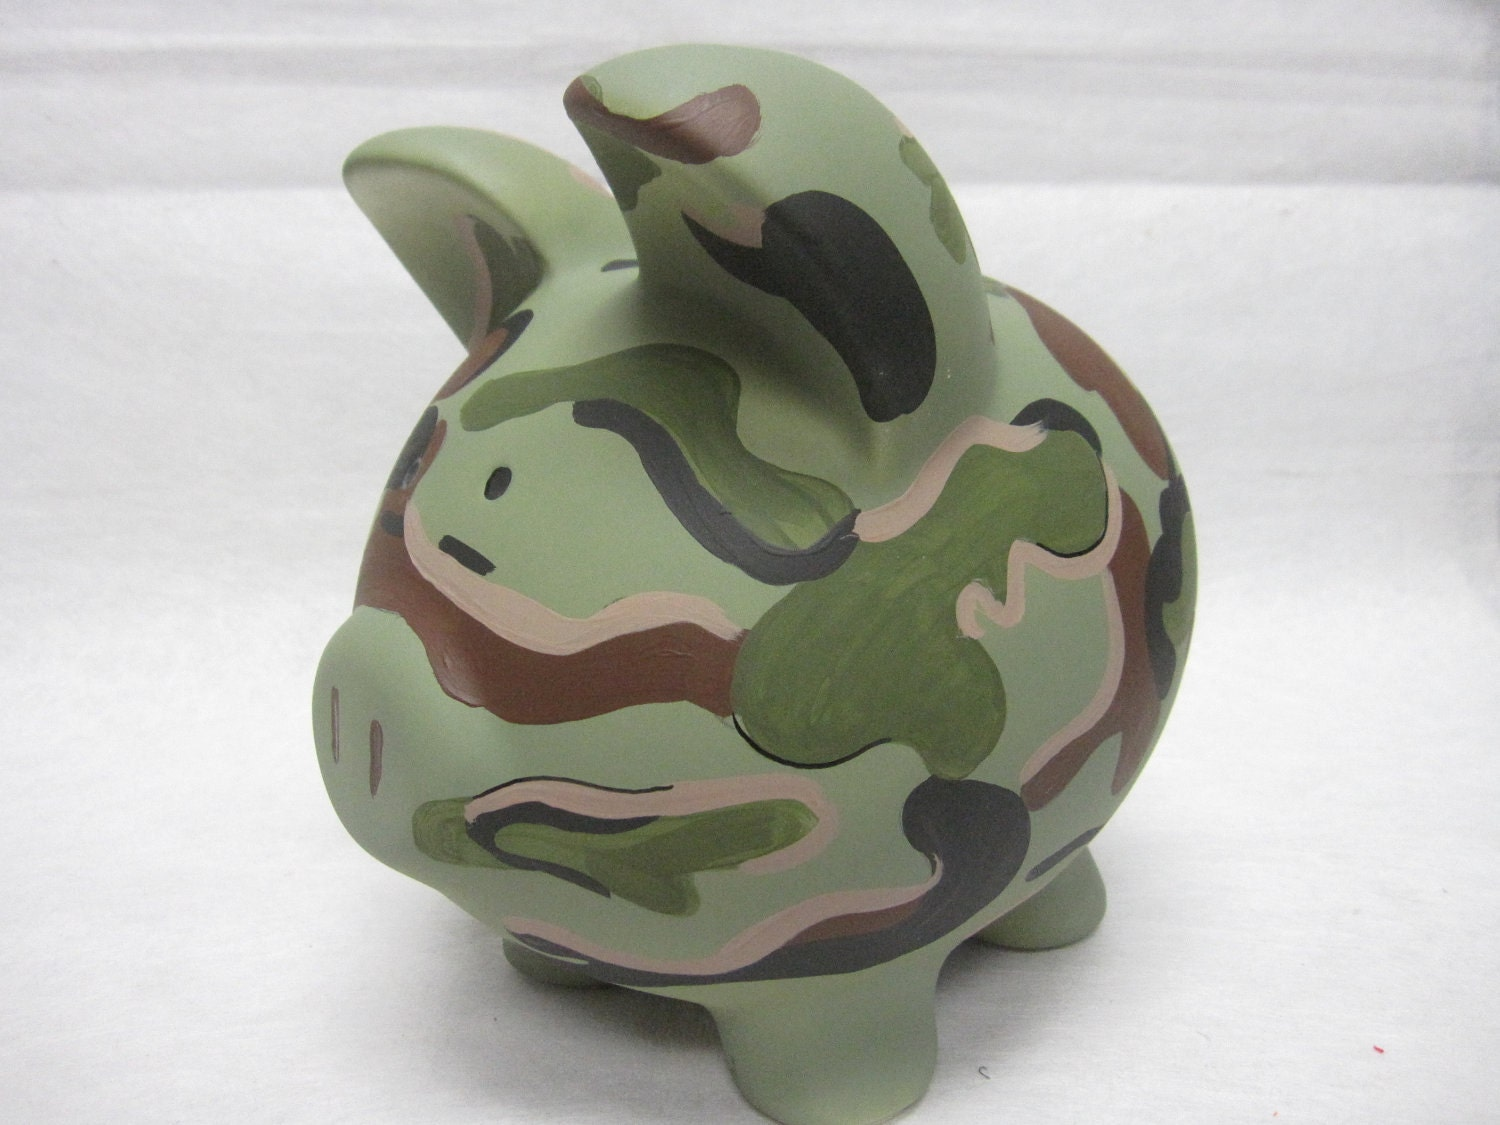 Personalized Piggy Bank Camoflauge By Thislittlepiggiebank On Etsy